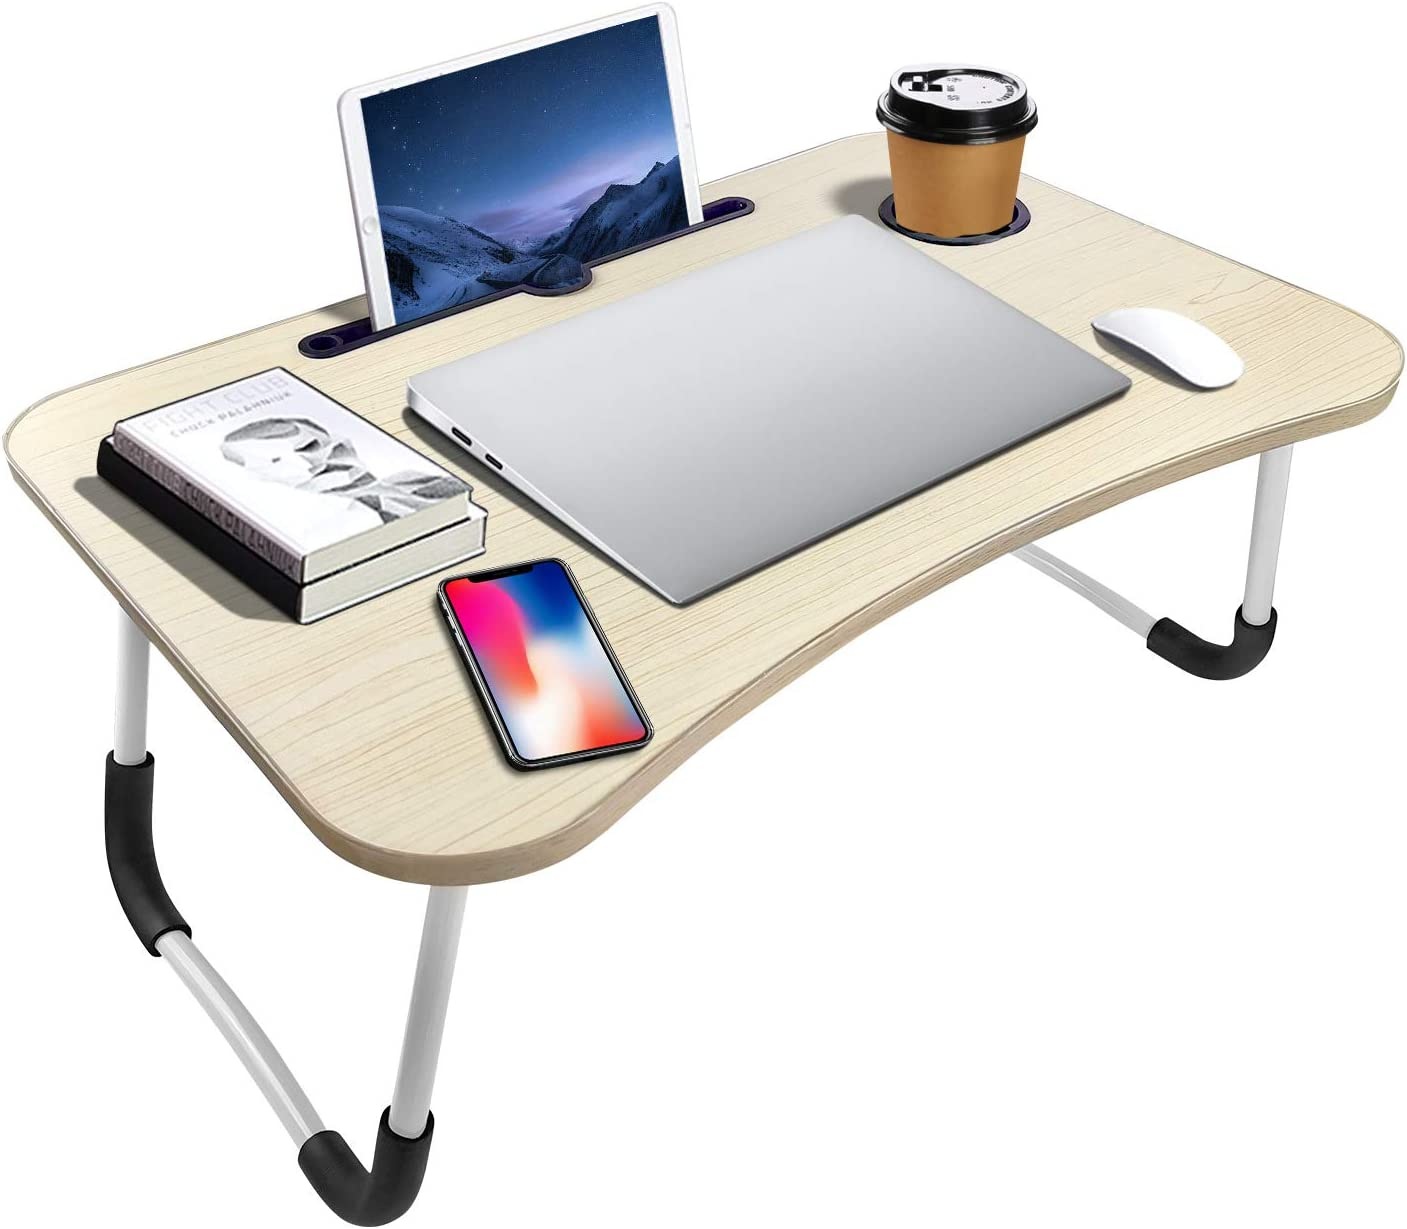 Portable Laptop Bed Table, Fordable Lap Desk with Cup Slot & Notebook Stand Breakfast Bed Trays for Eating and Laptops Book Holder Lap Desk for Floor,Couch, Sofa, Bed, Terrace, Balcony (White)